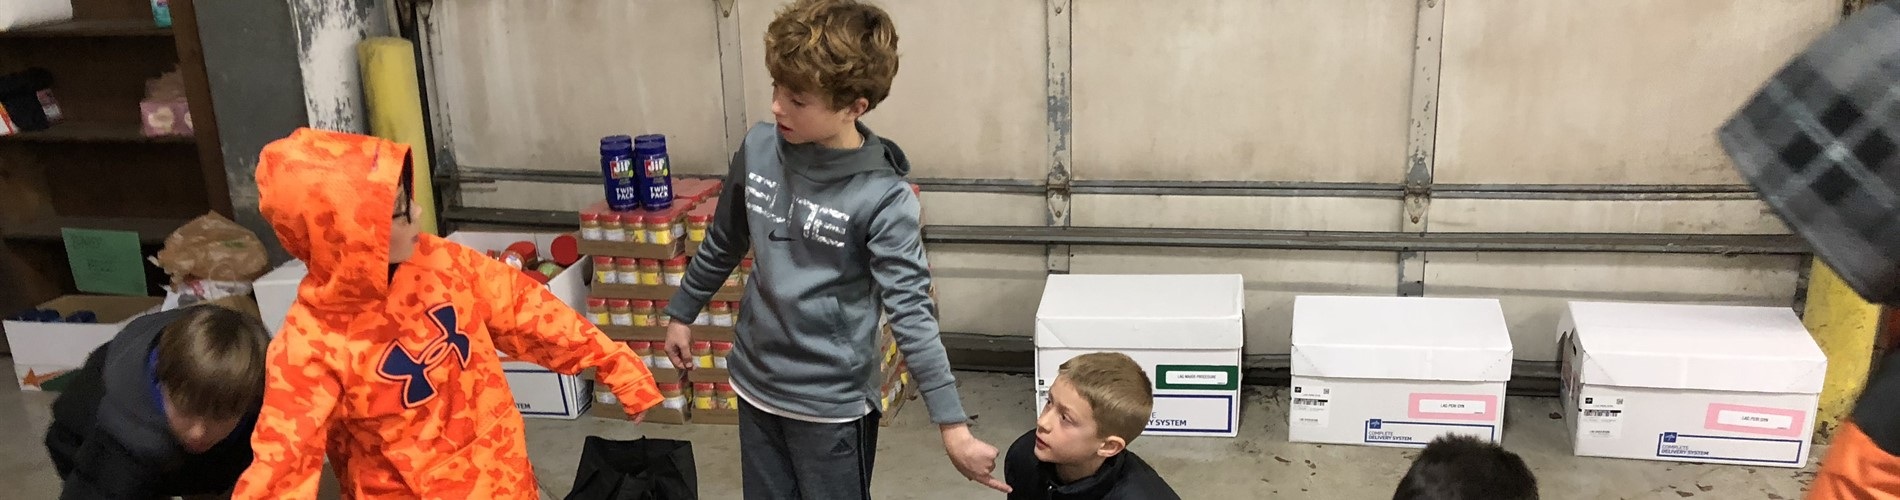 4th grade bball team helps with canned food drive